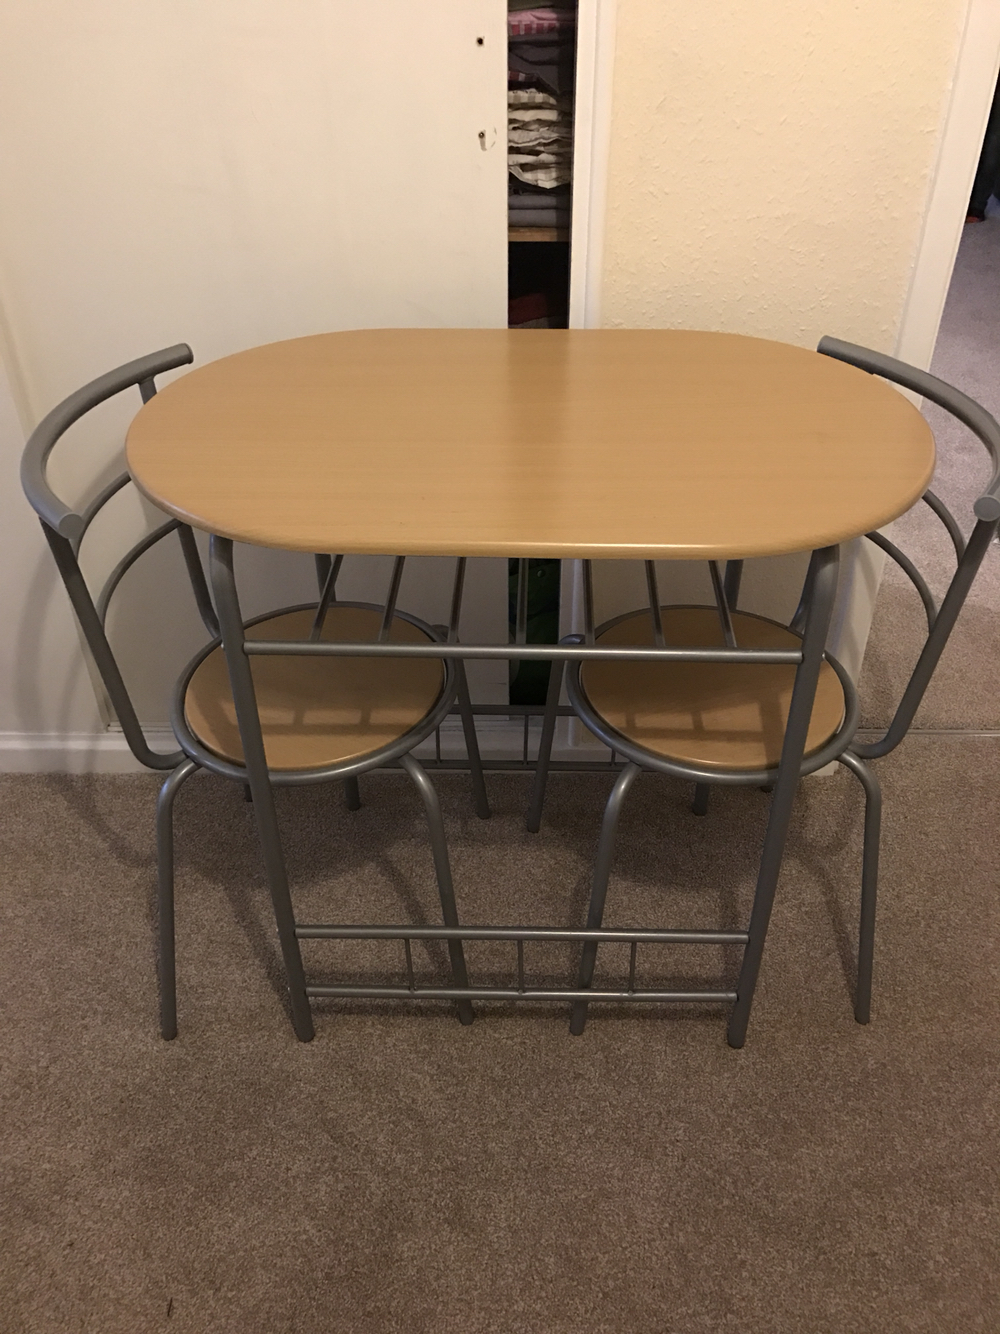 Second Hand Kitchen Furniture Buy and Sell in the UK and Ireland